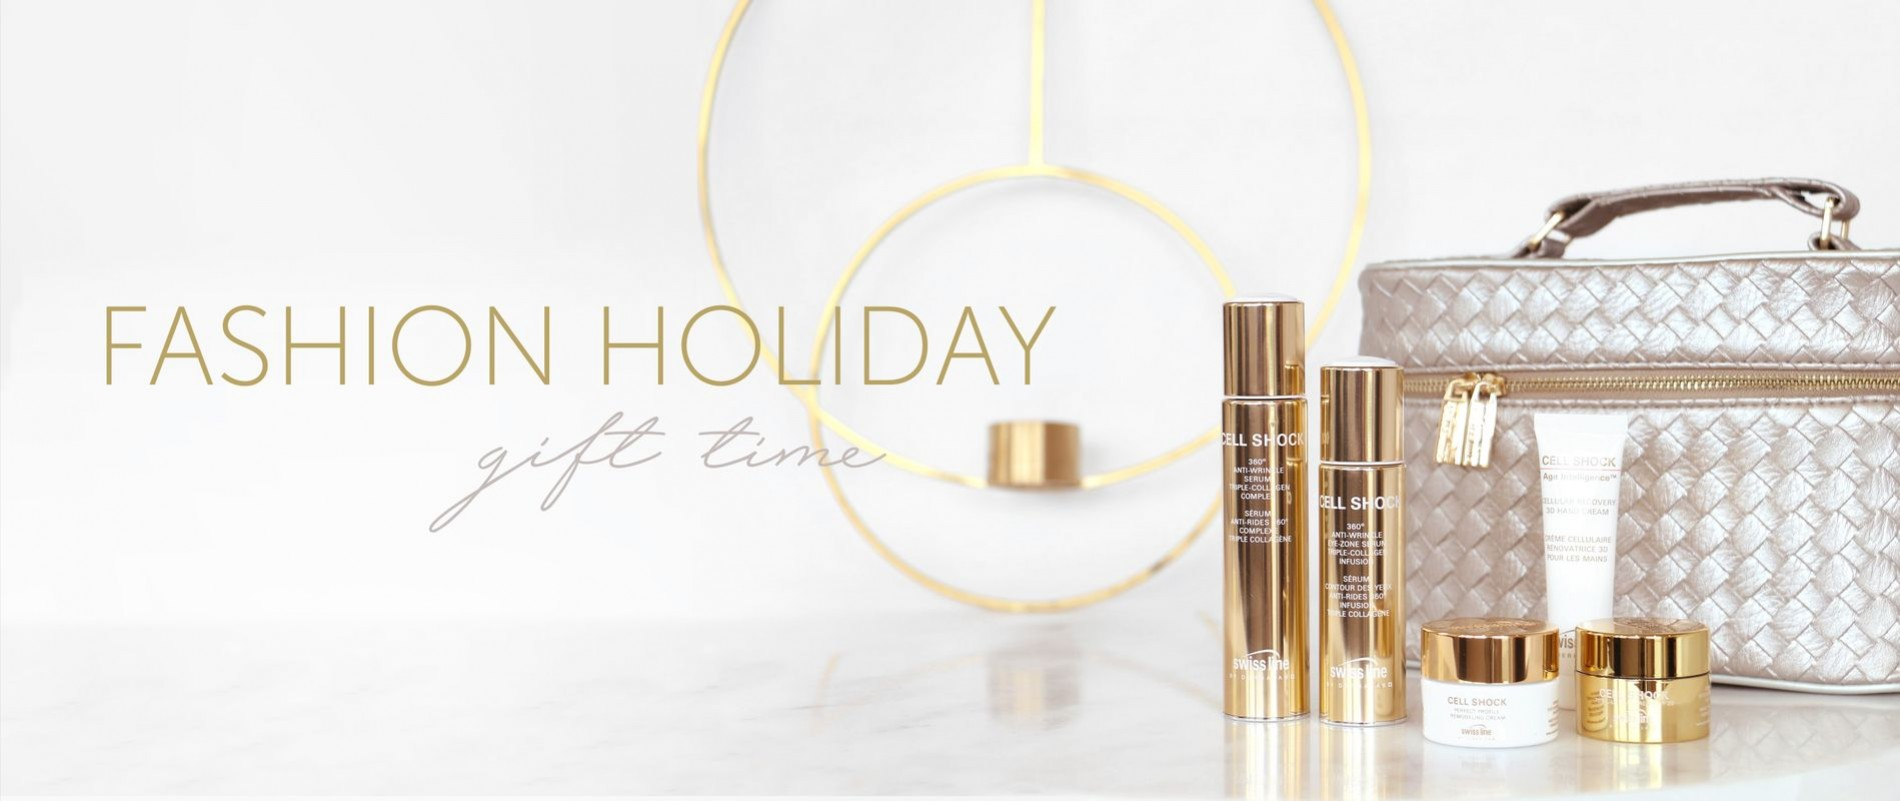 25% off The Fashion Holiday Gift Set